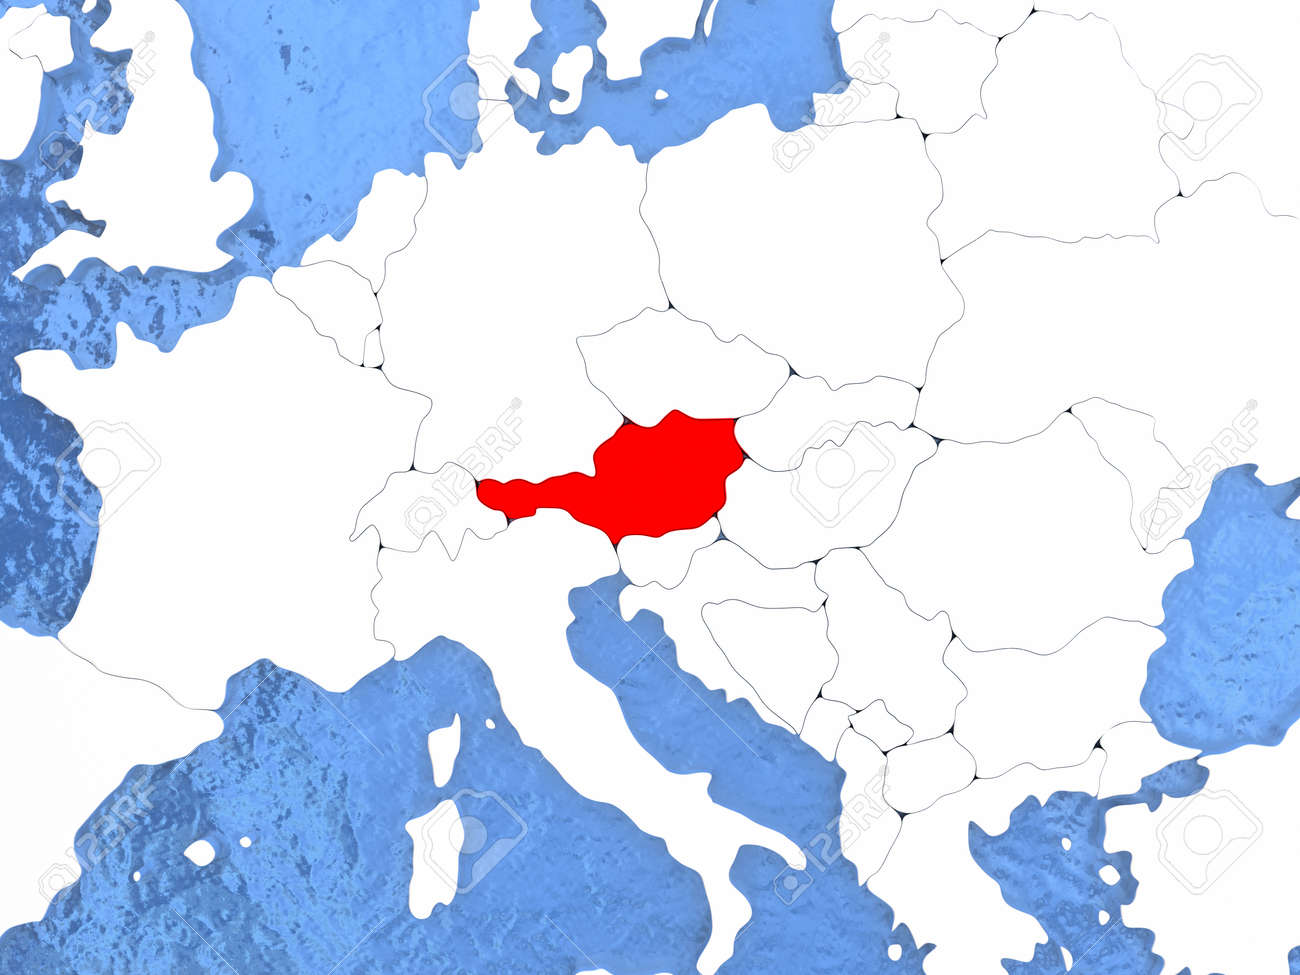 Political Map Austria In Red 3d Illustration With Watery Blue